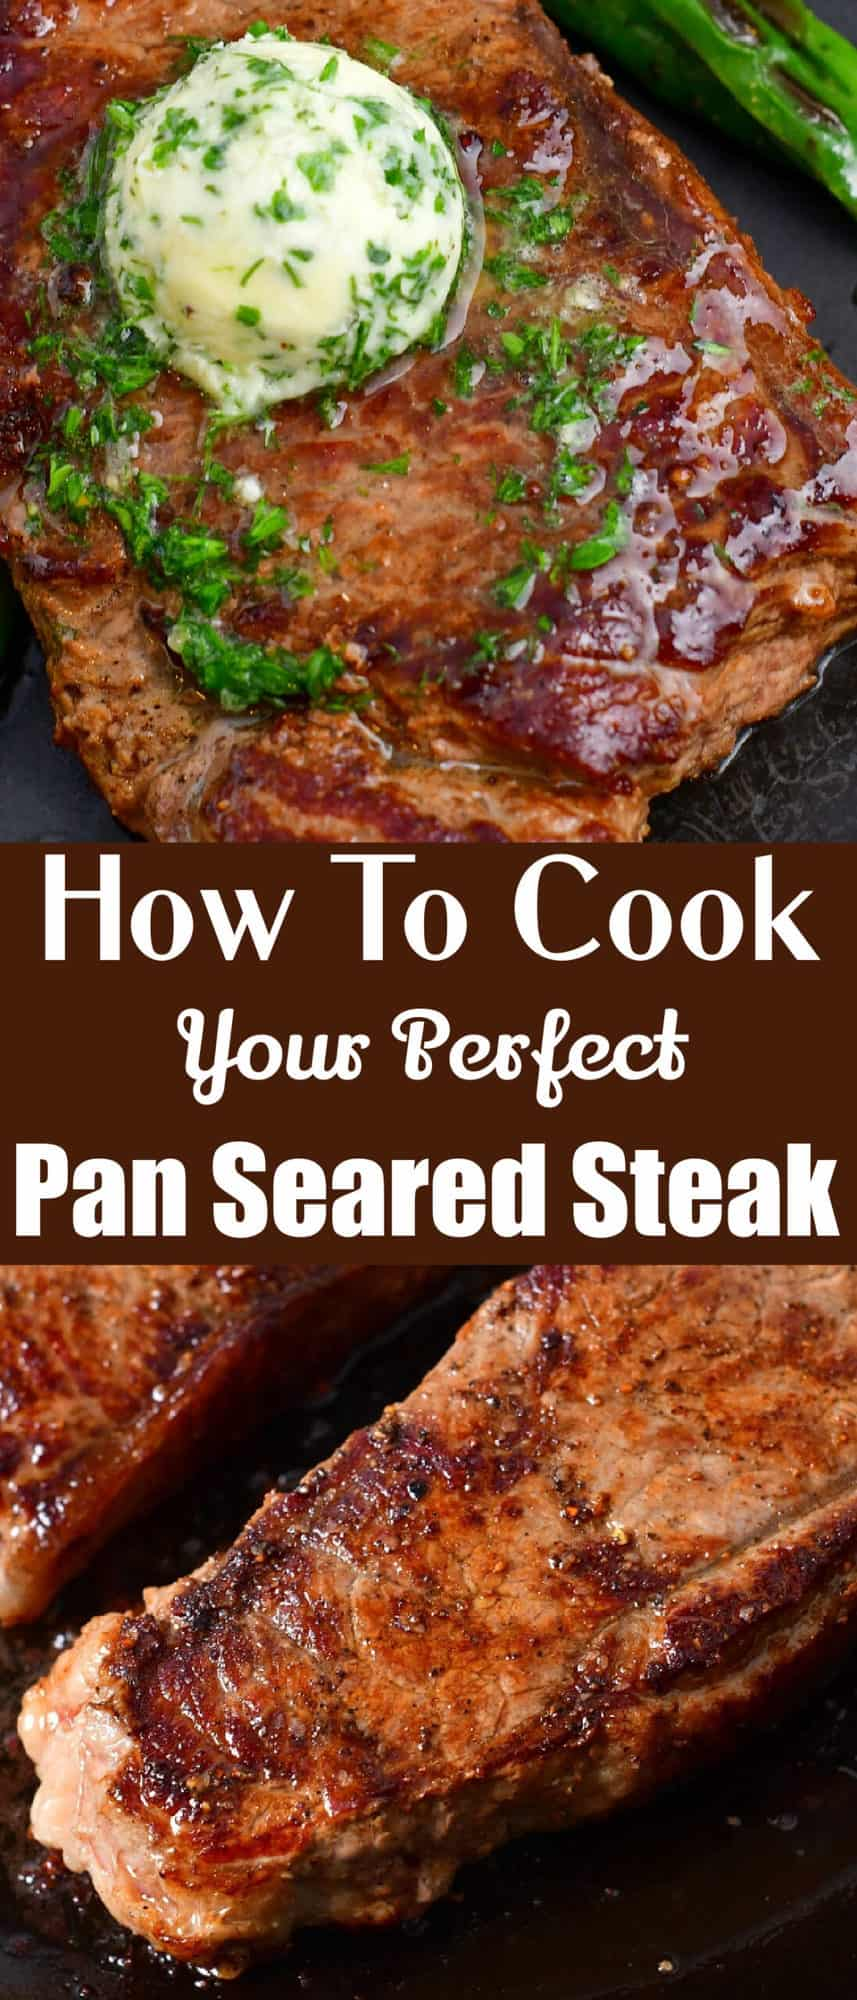 titled photo collage (and shown): How To Cook Your Perfect Pan Seared Steak